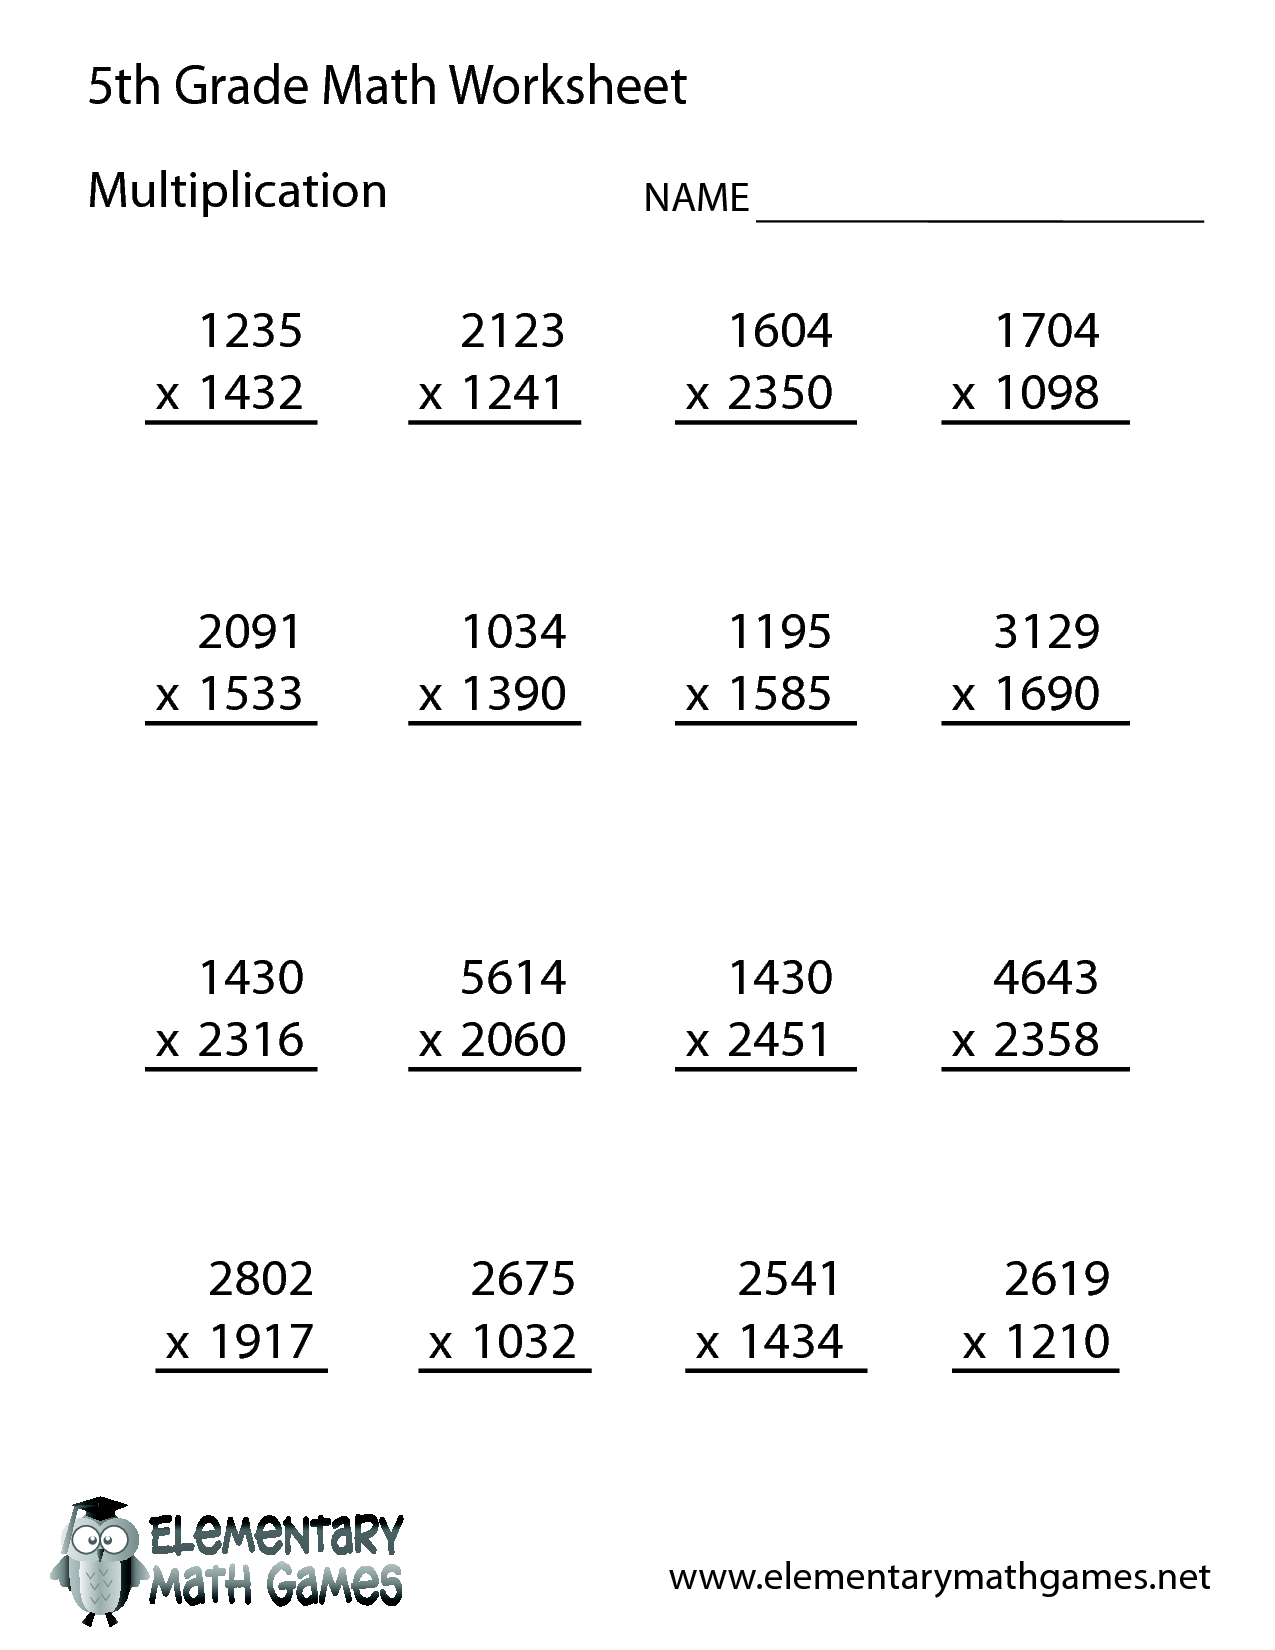 Worksheet 5th Grade Math Worksheet 1000 images about javales math worksheets on pinterest multiplication practice 5th grade and drills